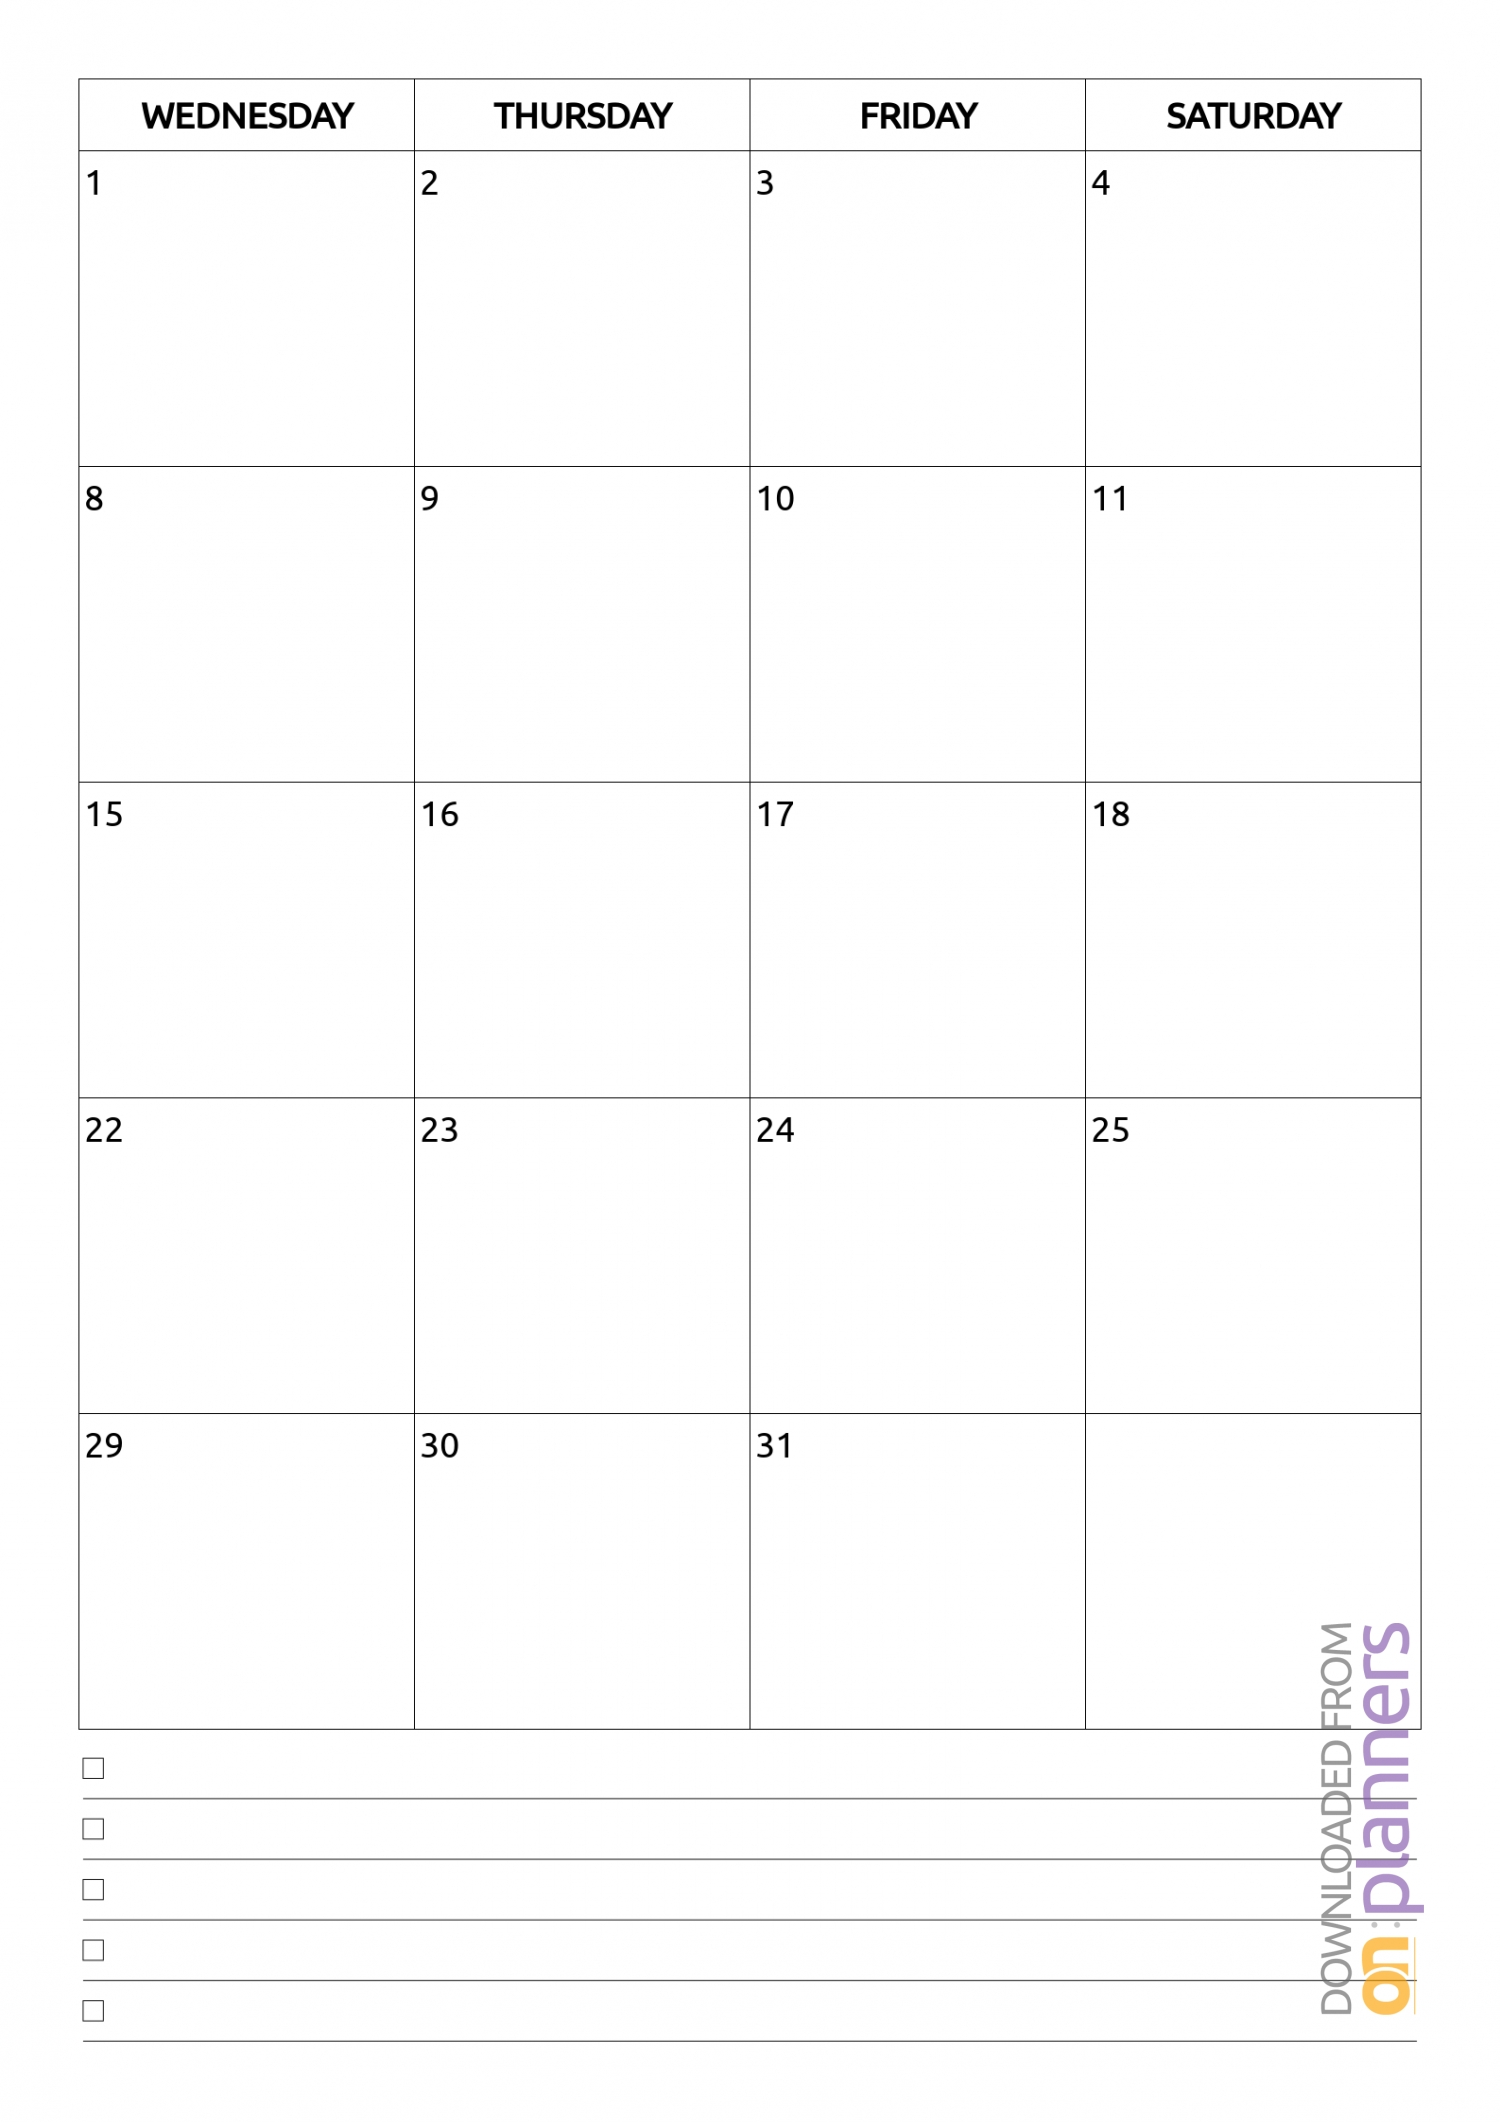 Download Printable Monthly Calendar With Notes Pdf-Blank Calendar Template 2 Months Per Page